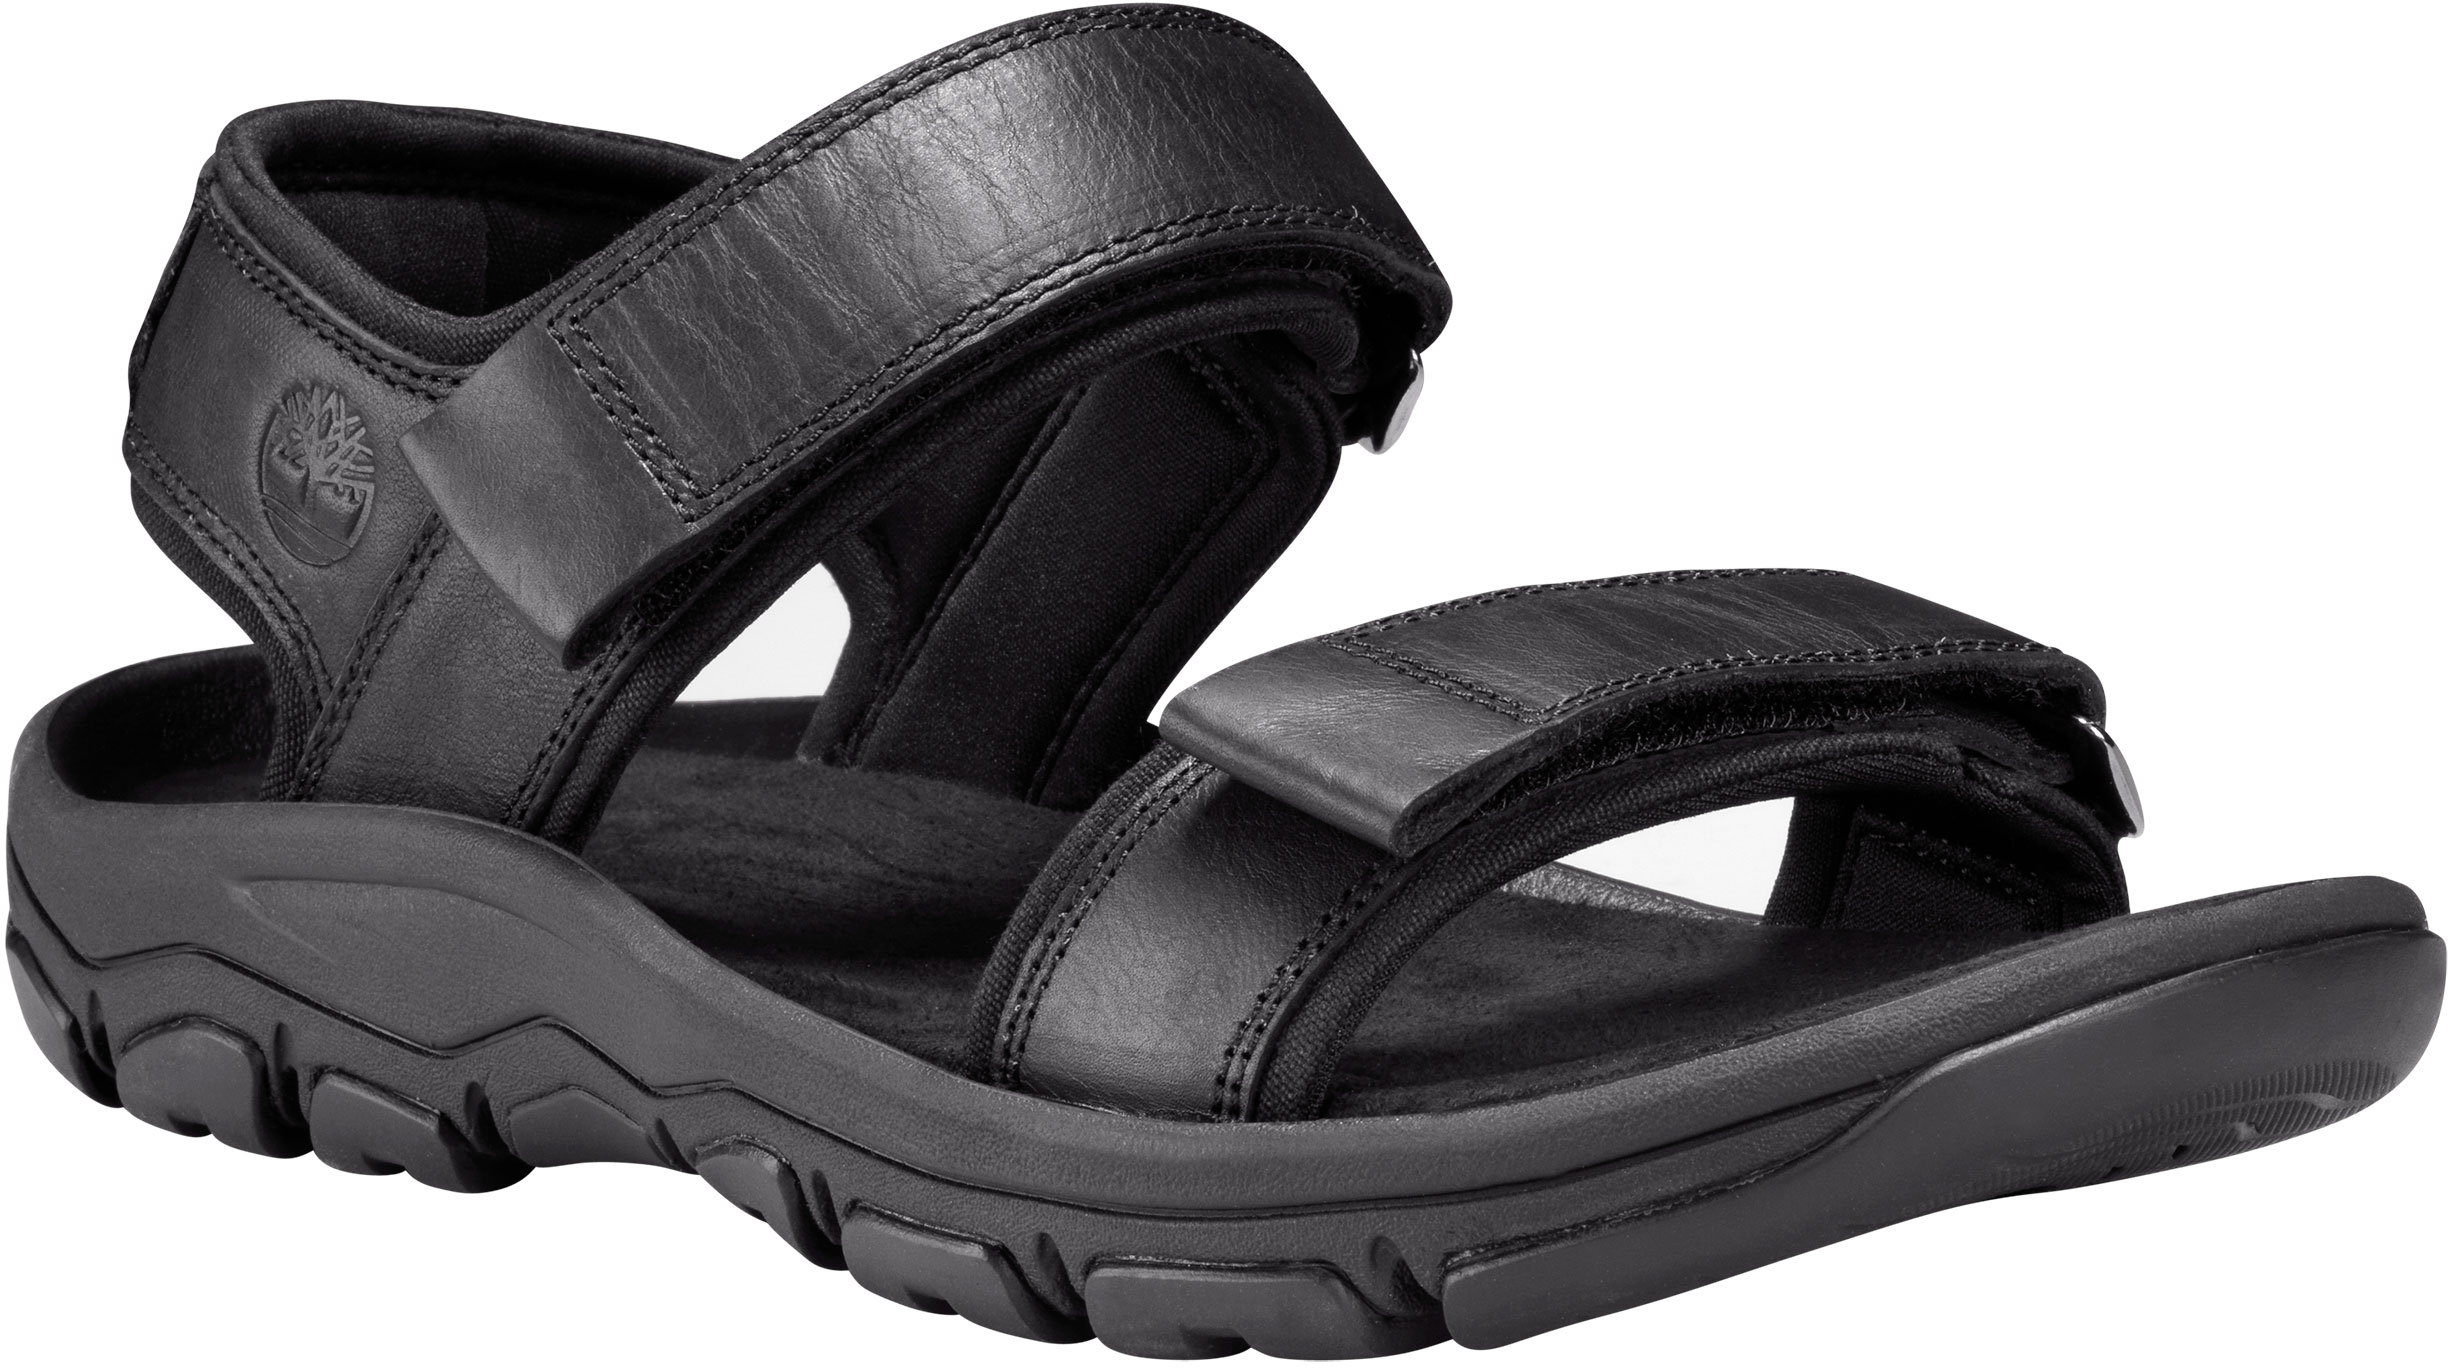 772a135ca447 ... Sandals · Strappy · Timberland Men s Roslindale 2-Strap Sandal  TB0A1MS4015 Black Full-Grain ·  https   www.theshoemart.com product images images TIM